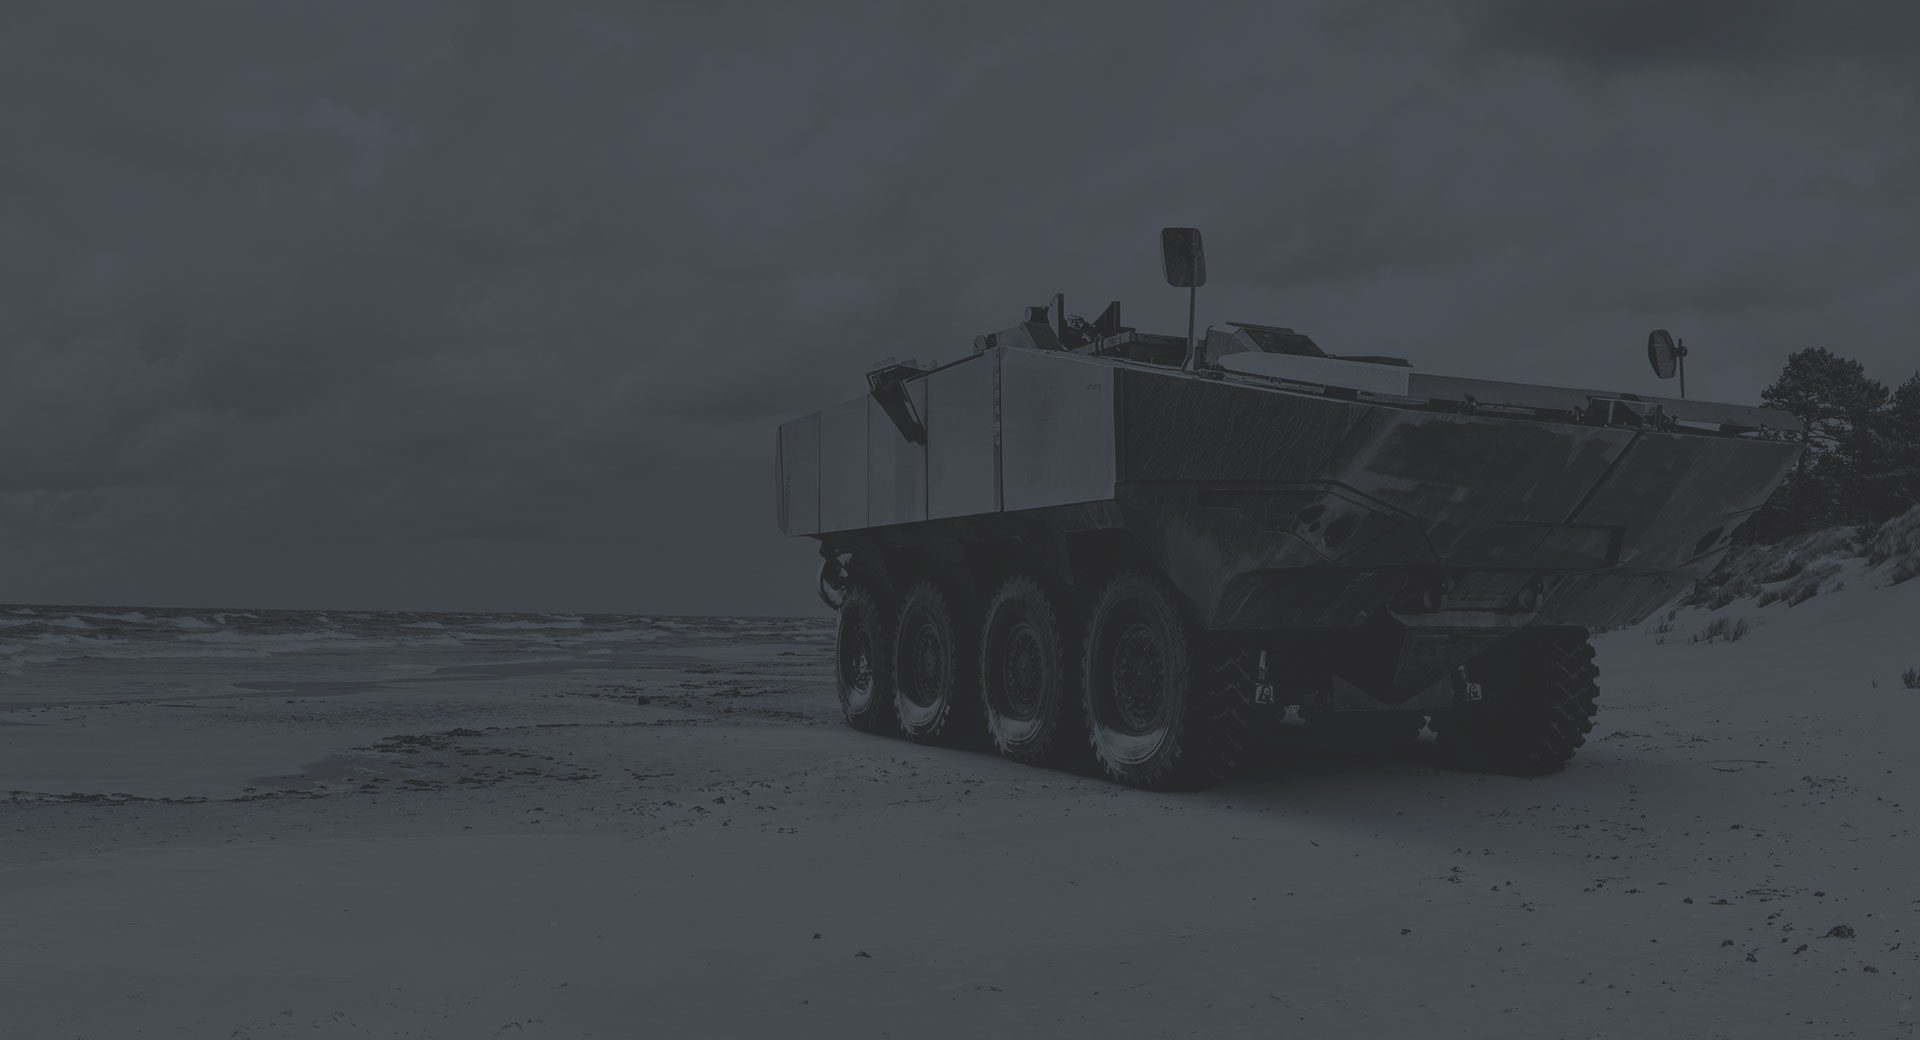 SAIC ACV On Beach Dark Duotone